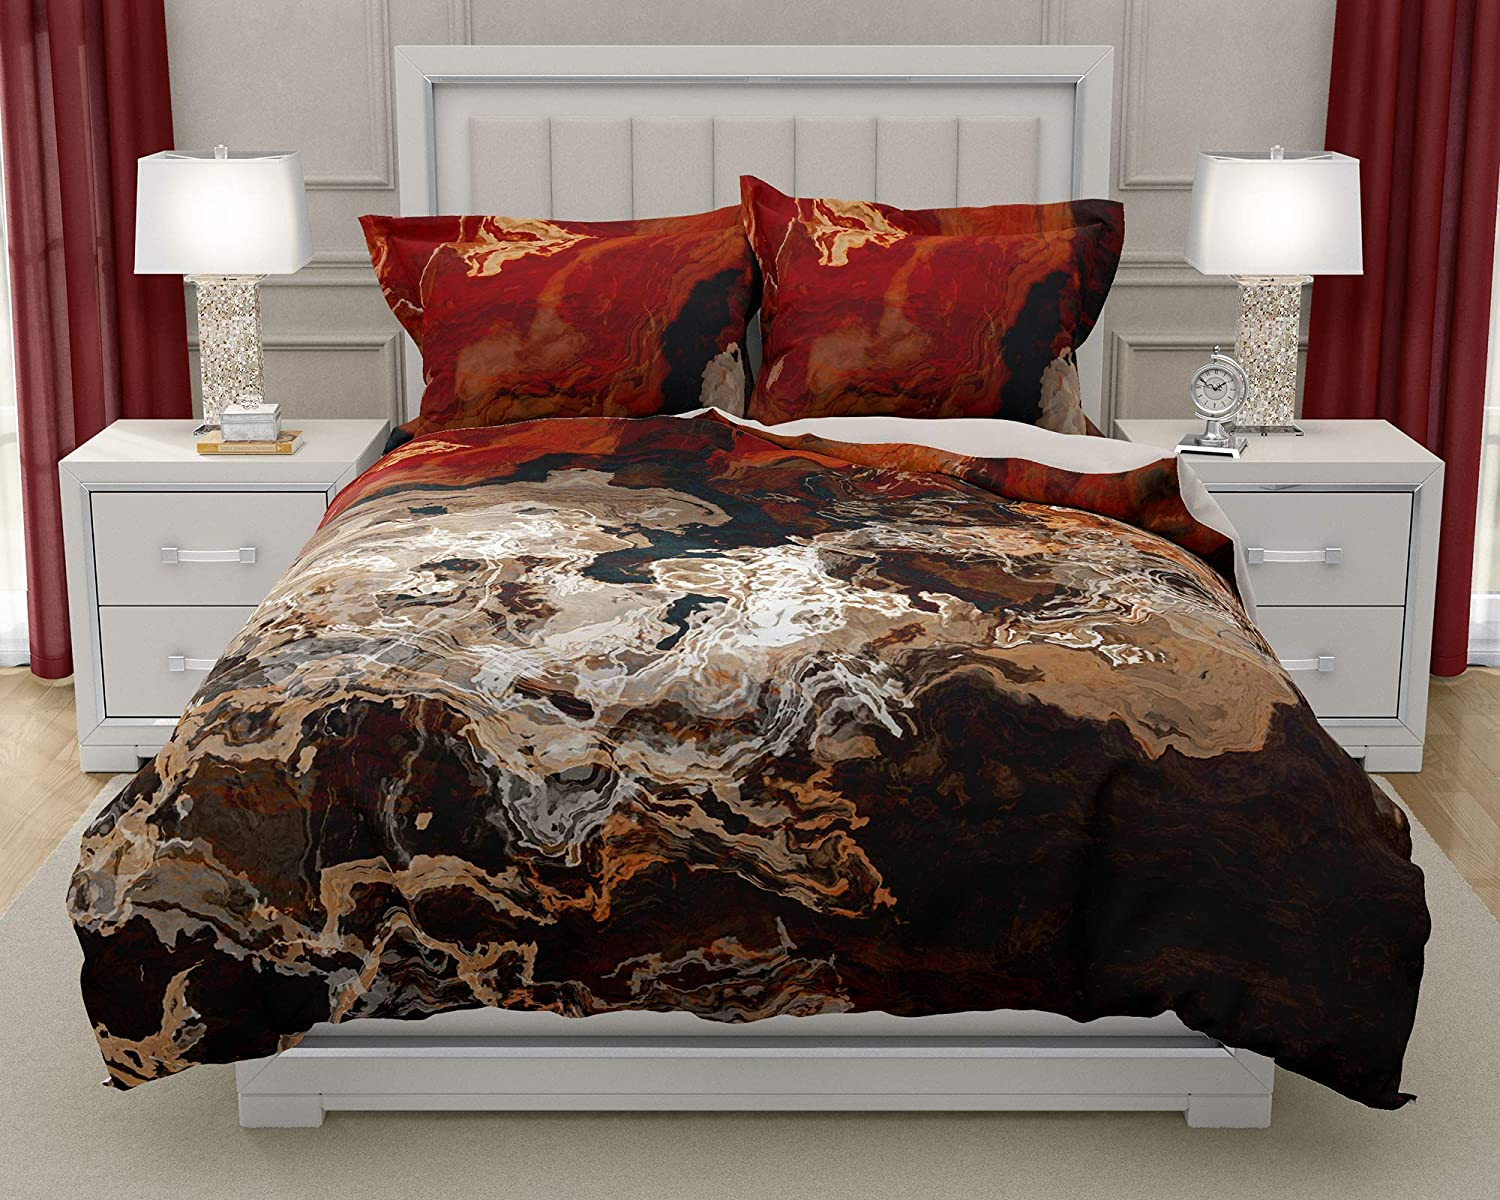 Image of Home and Kitchen King or Queen 3 pc Duvet Cover Set with abstract art, Hammered Copper